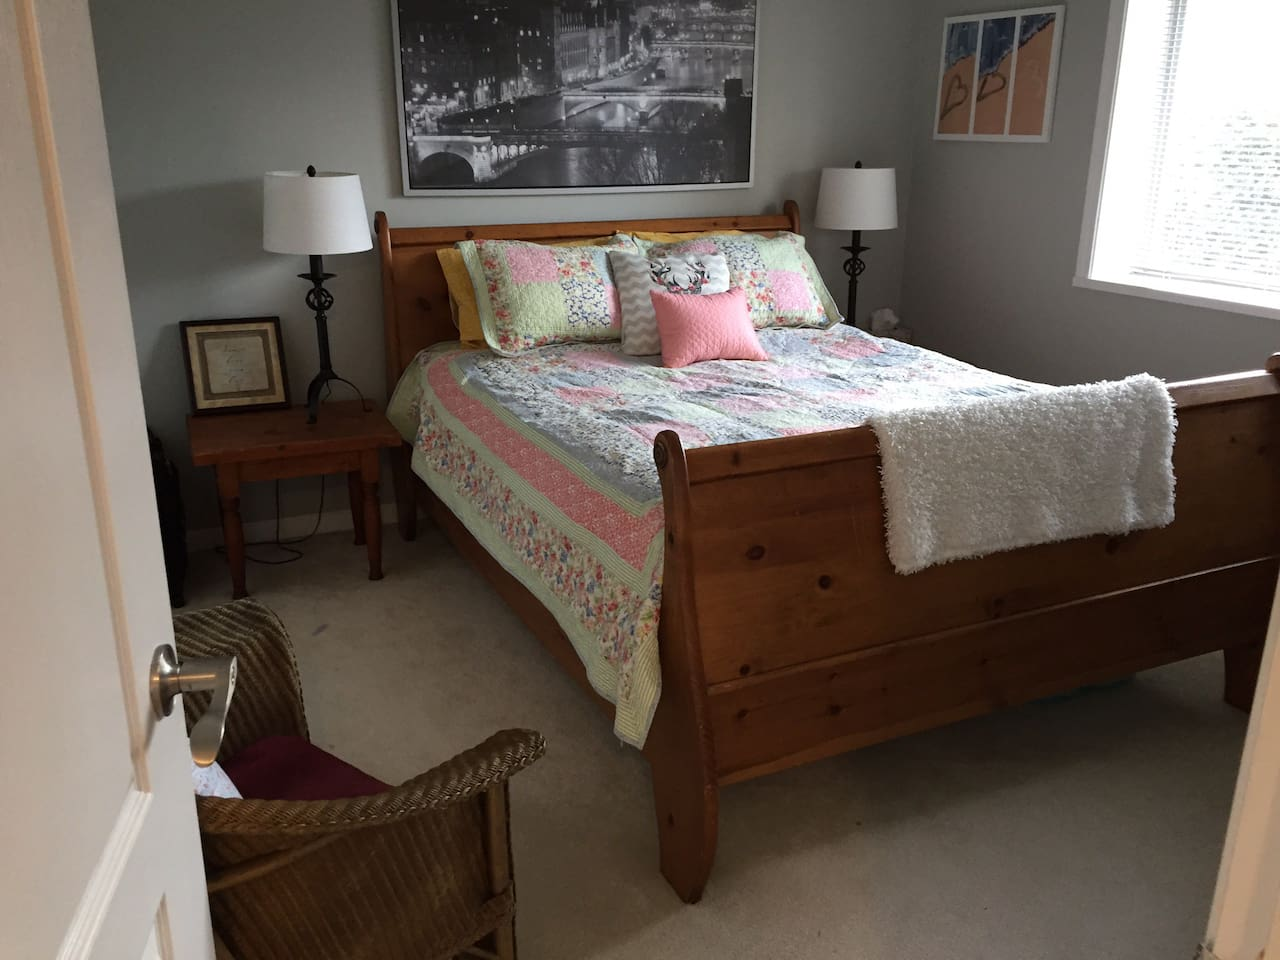 Queen bed, bright natural light. Desk and chair for a working space as well.Small tv with cable included.This room has the en suite bathroom attached.